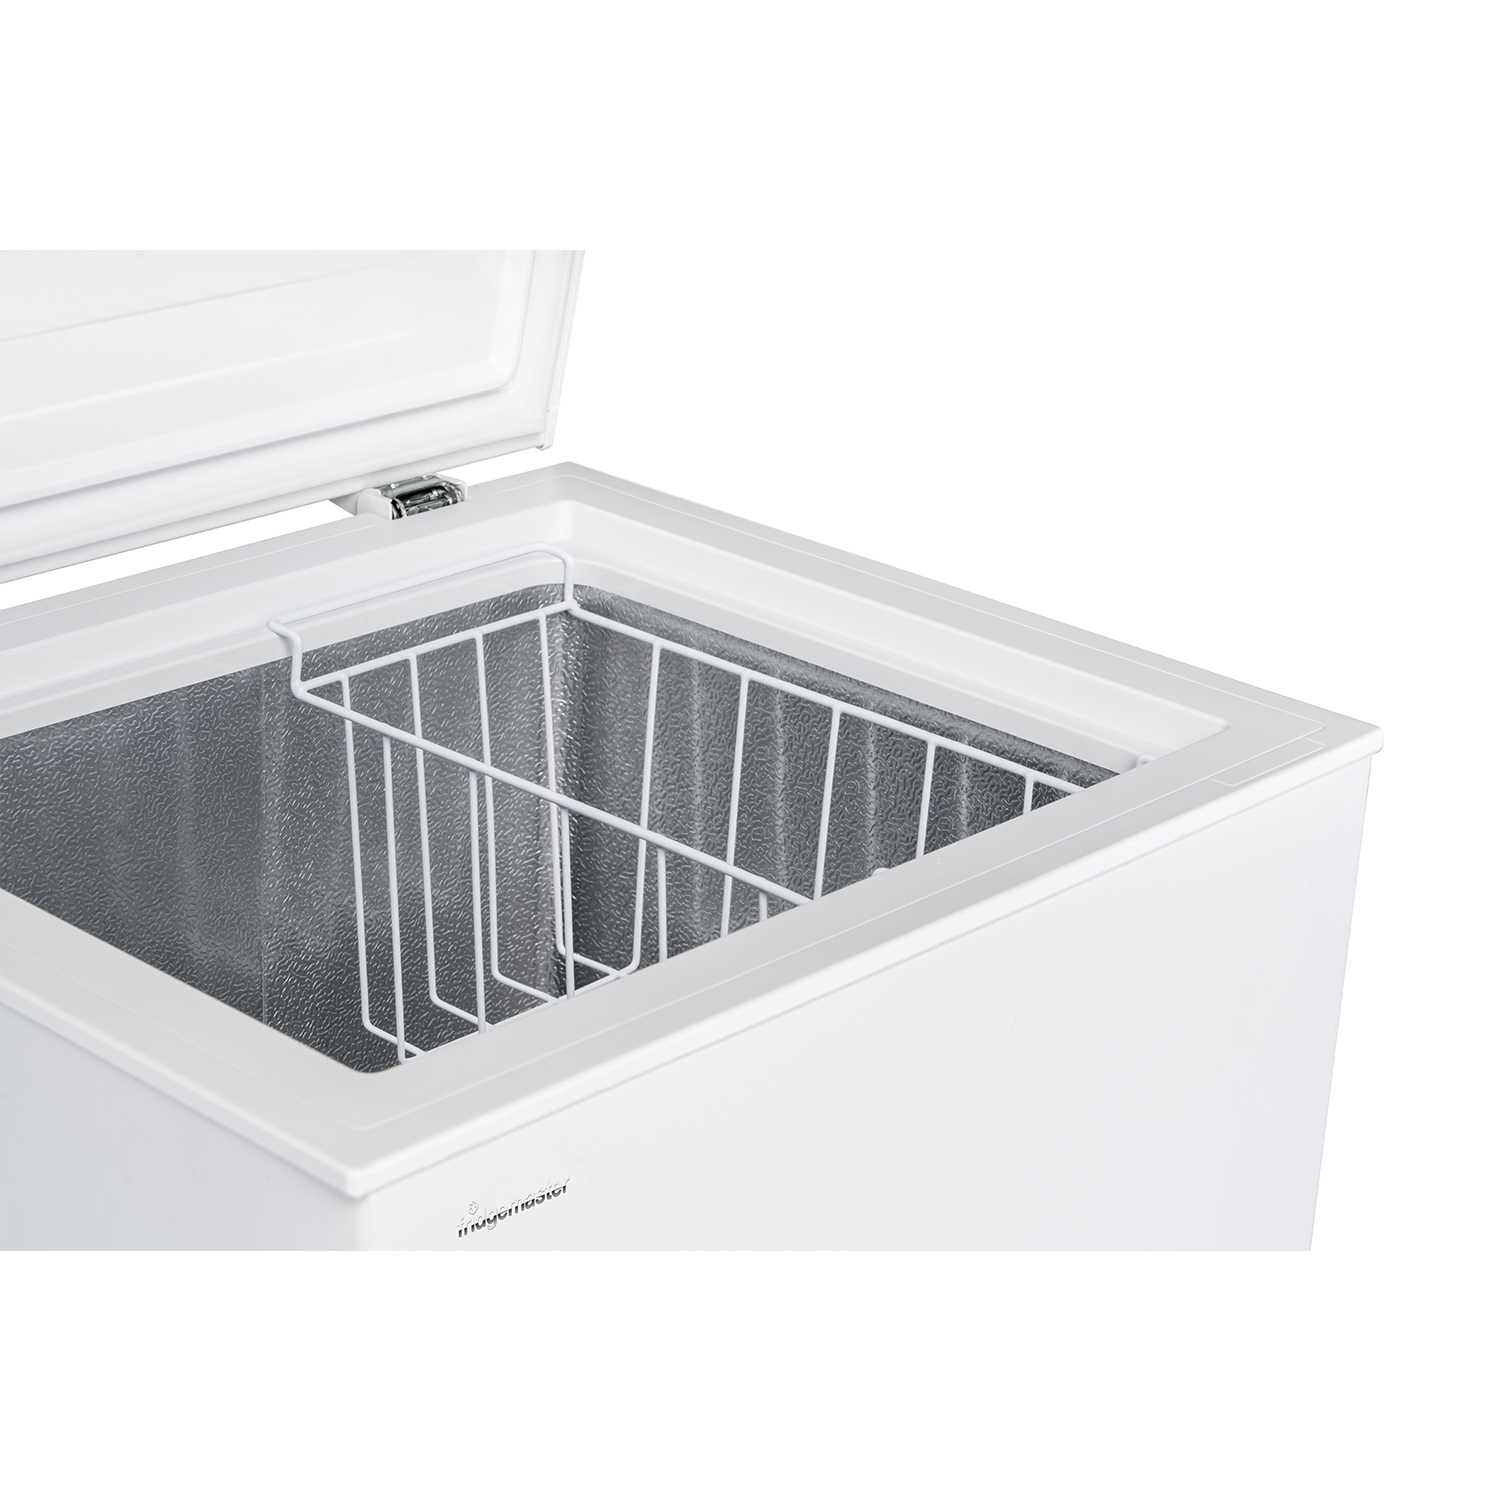 Fridgemaster 55cm Static Chest Freezer - White - A+ Energy Rated - 5